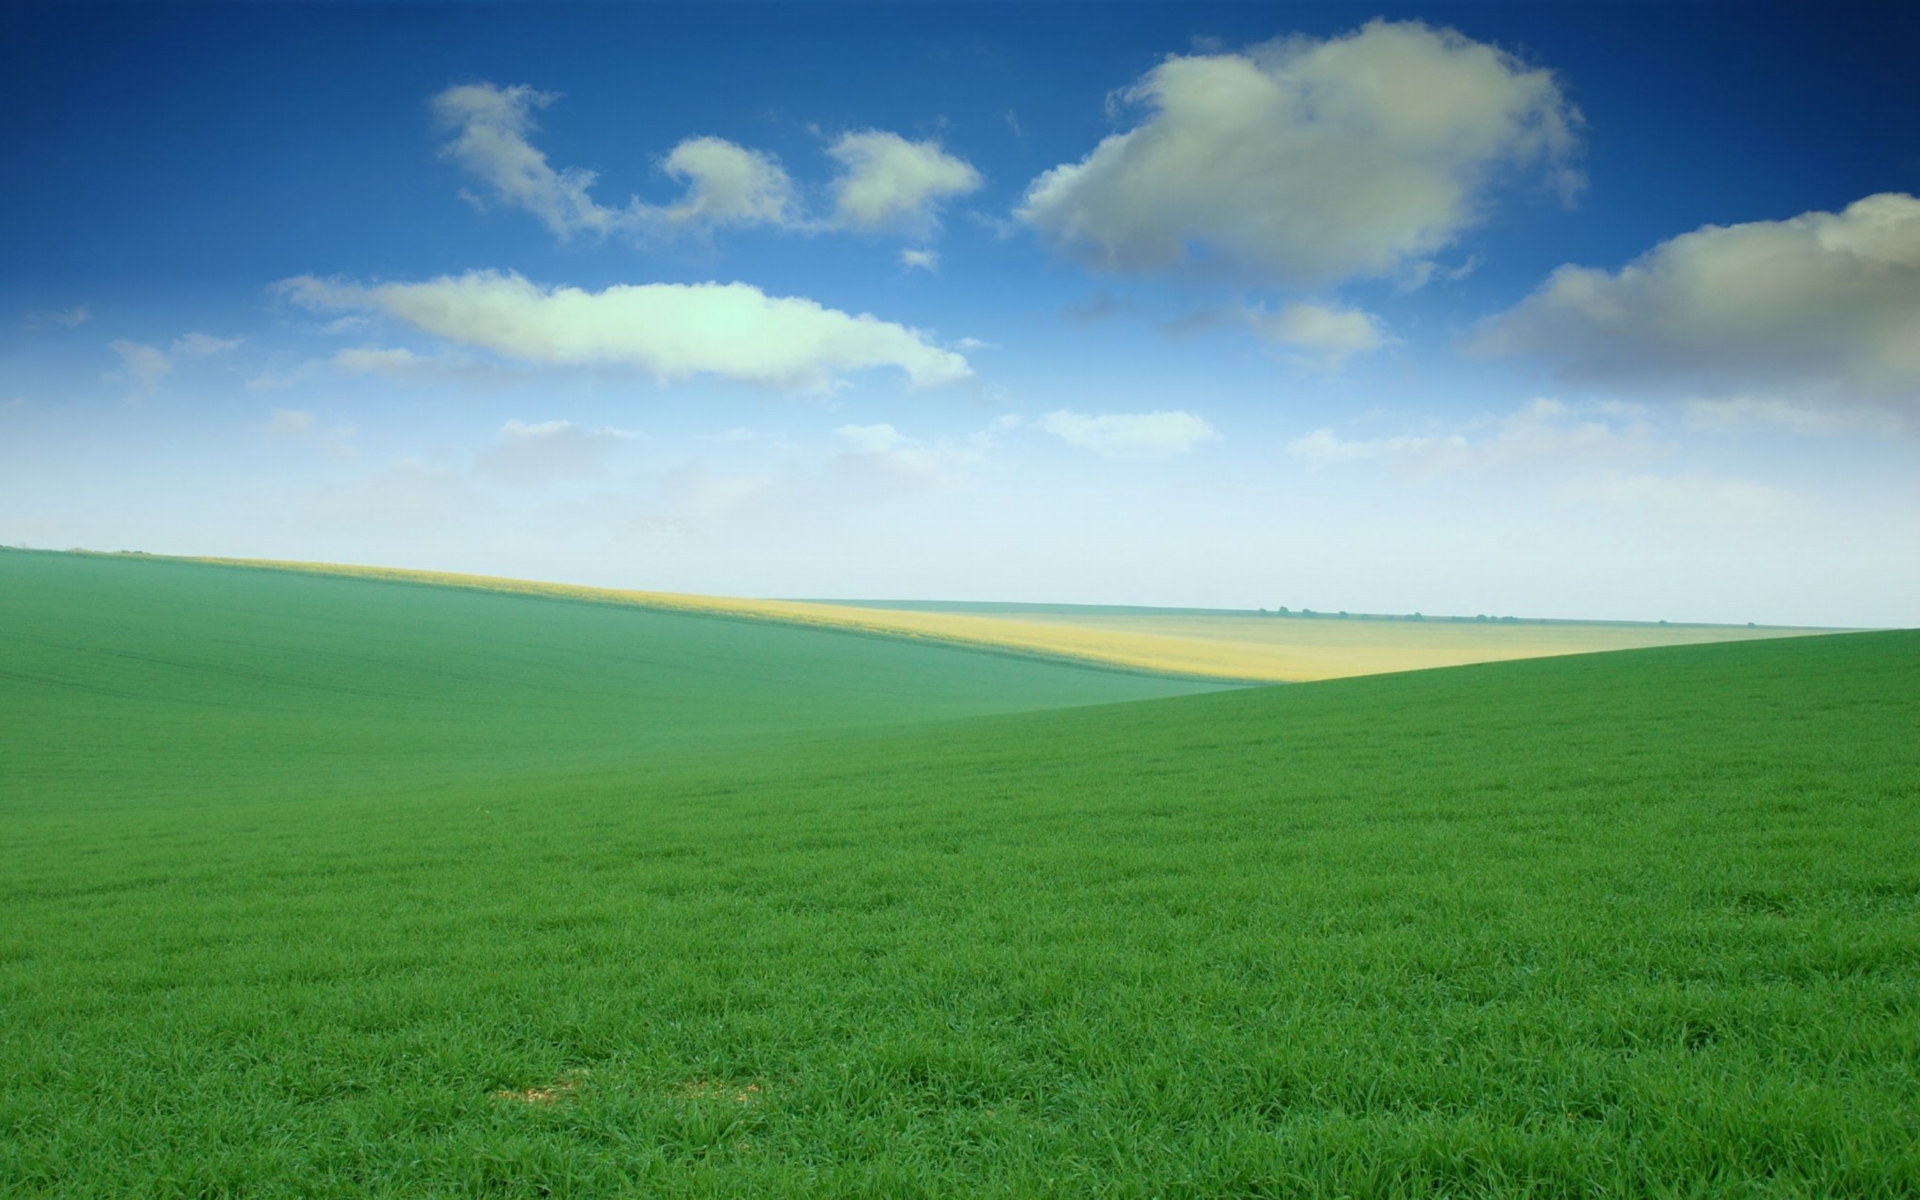 Green Field wallpapers | Green Field stock photos